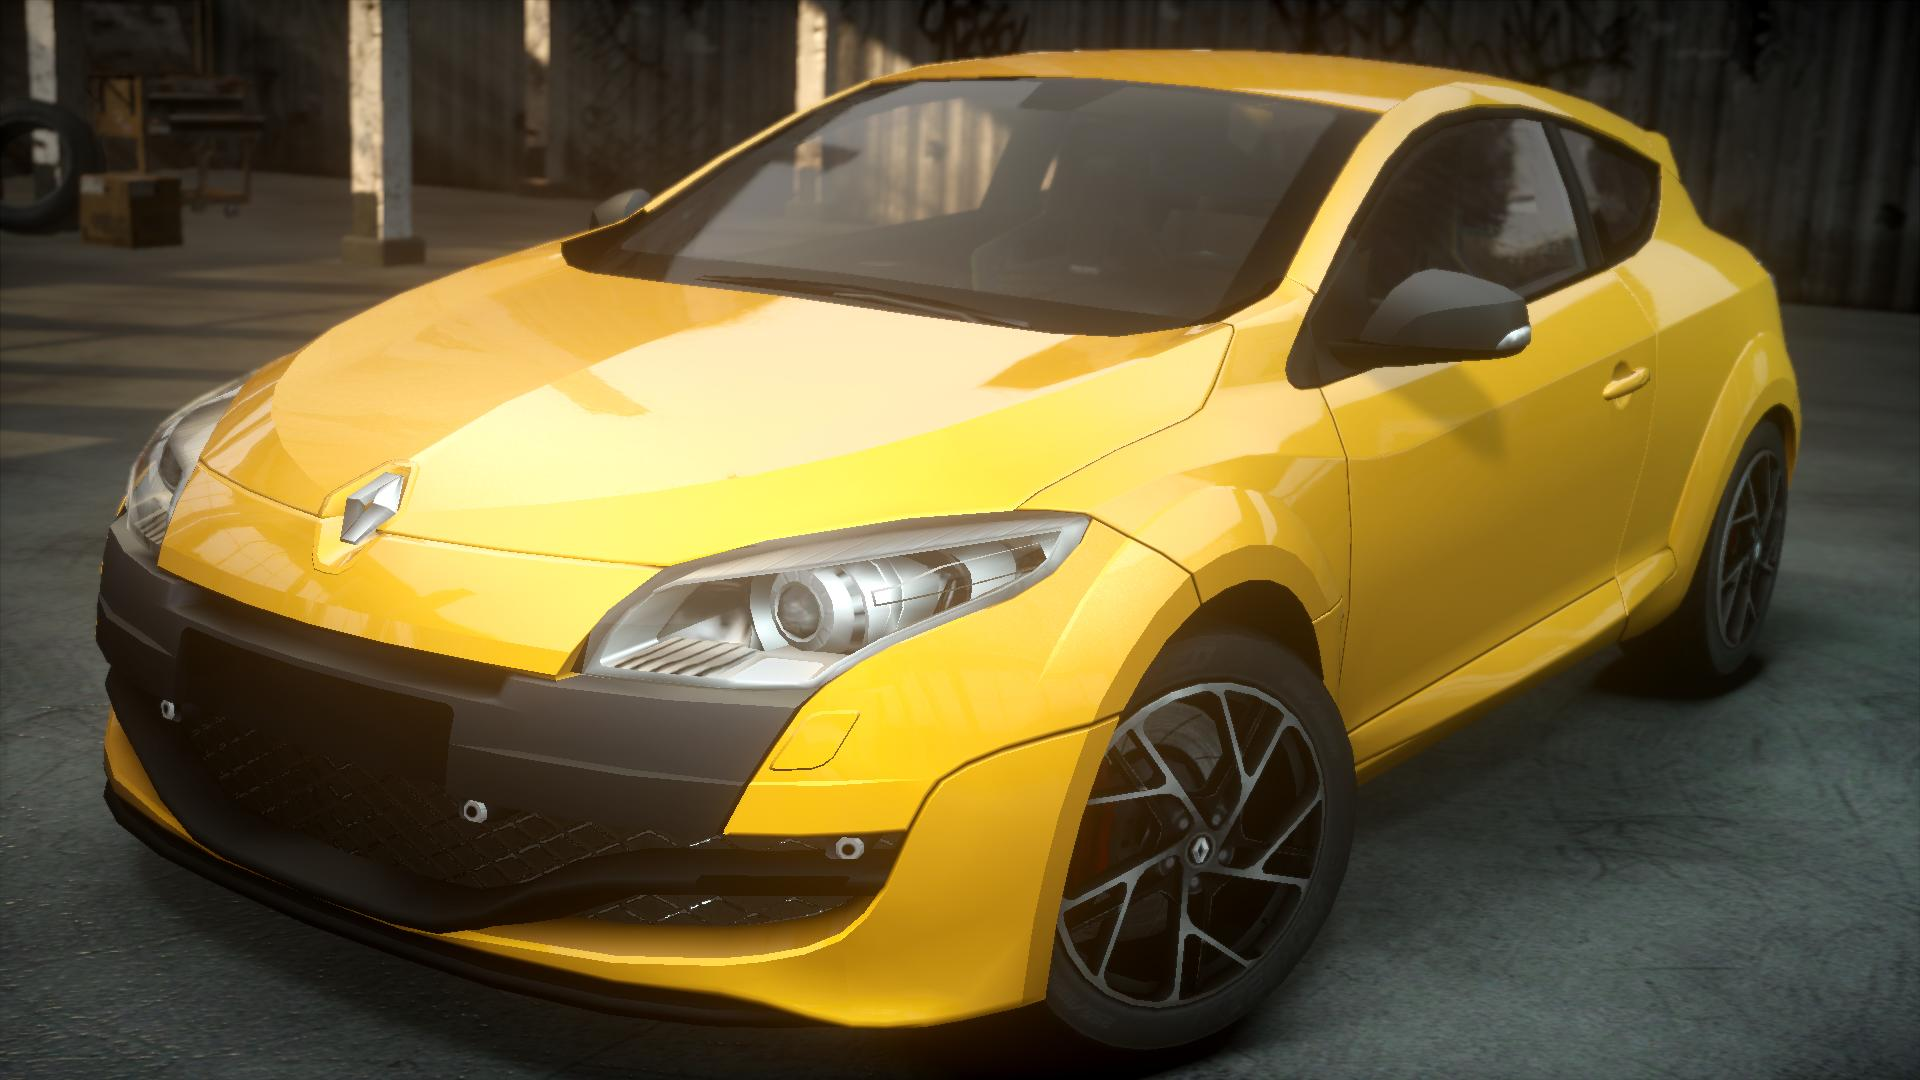 renault m gane rs need for speed wiki fandom powered by wikia. Black Bedroom Furniture Sets. Home Design Ideas